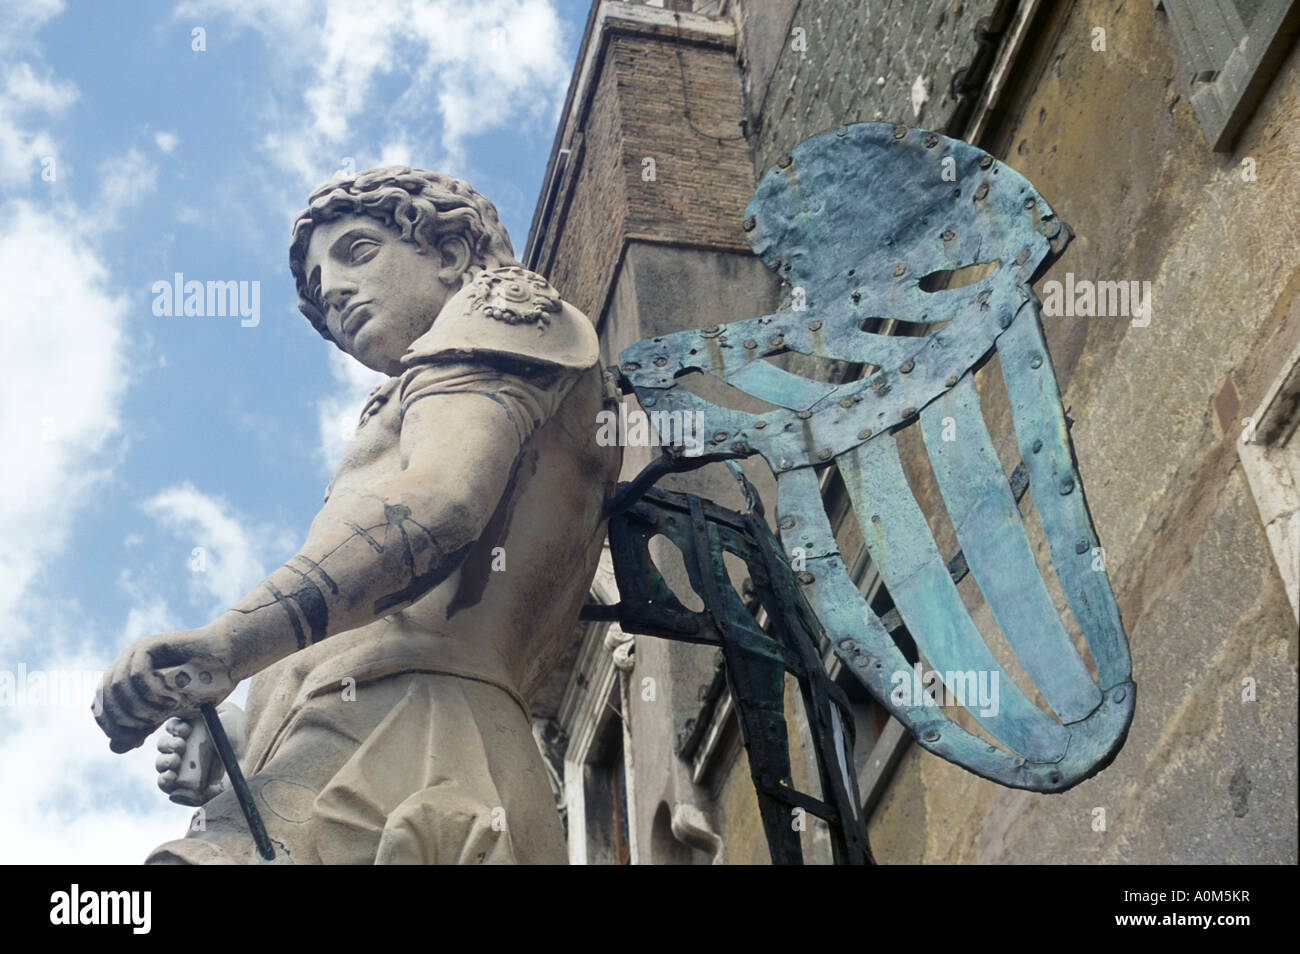 Michelangelo designed angel at Castel Sant' Angelo in Rome, Italy Stock Photo